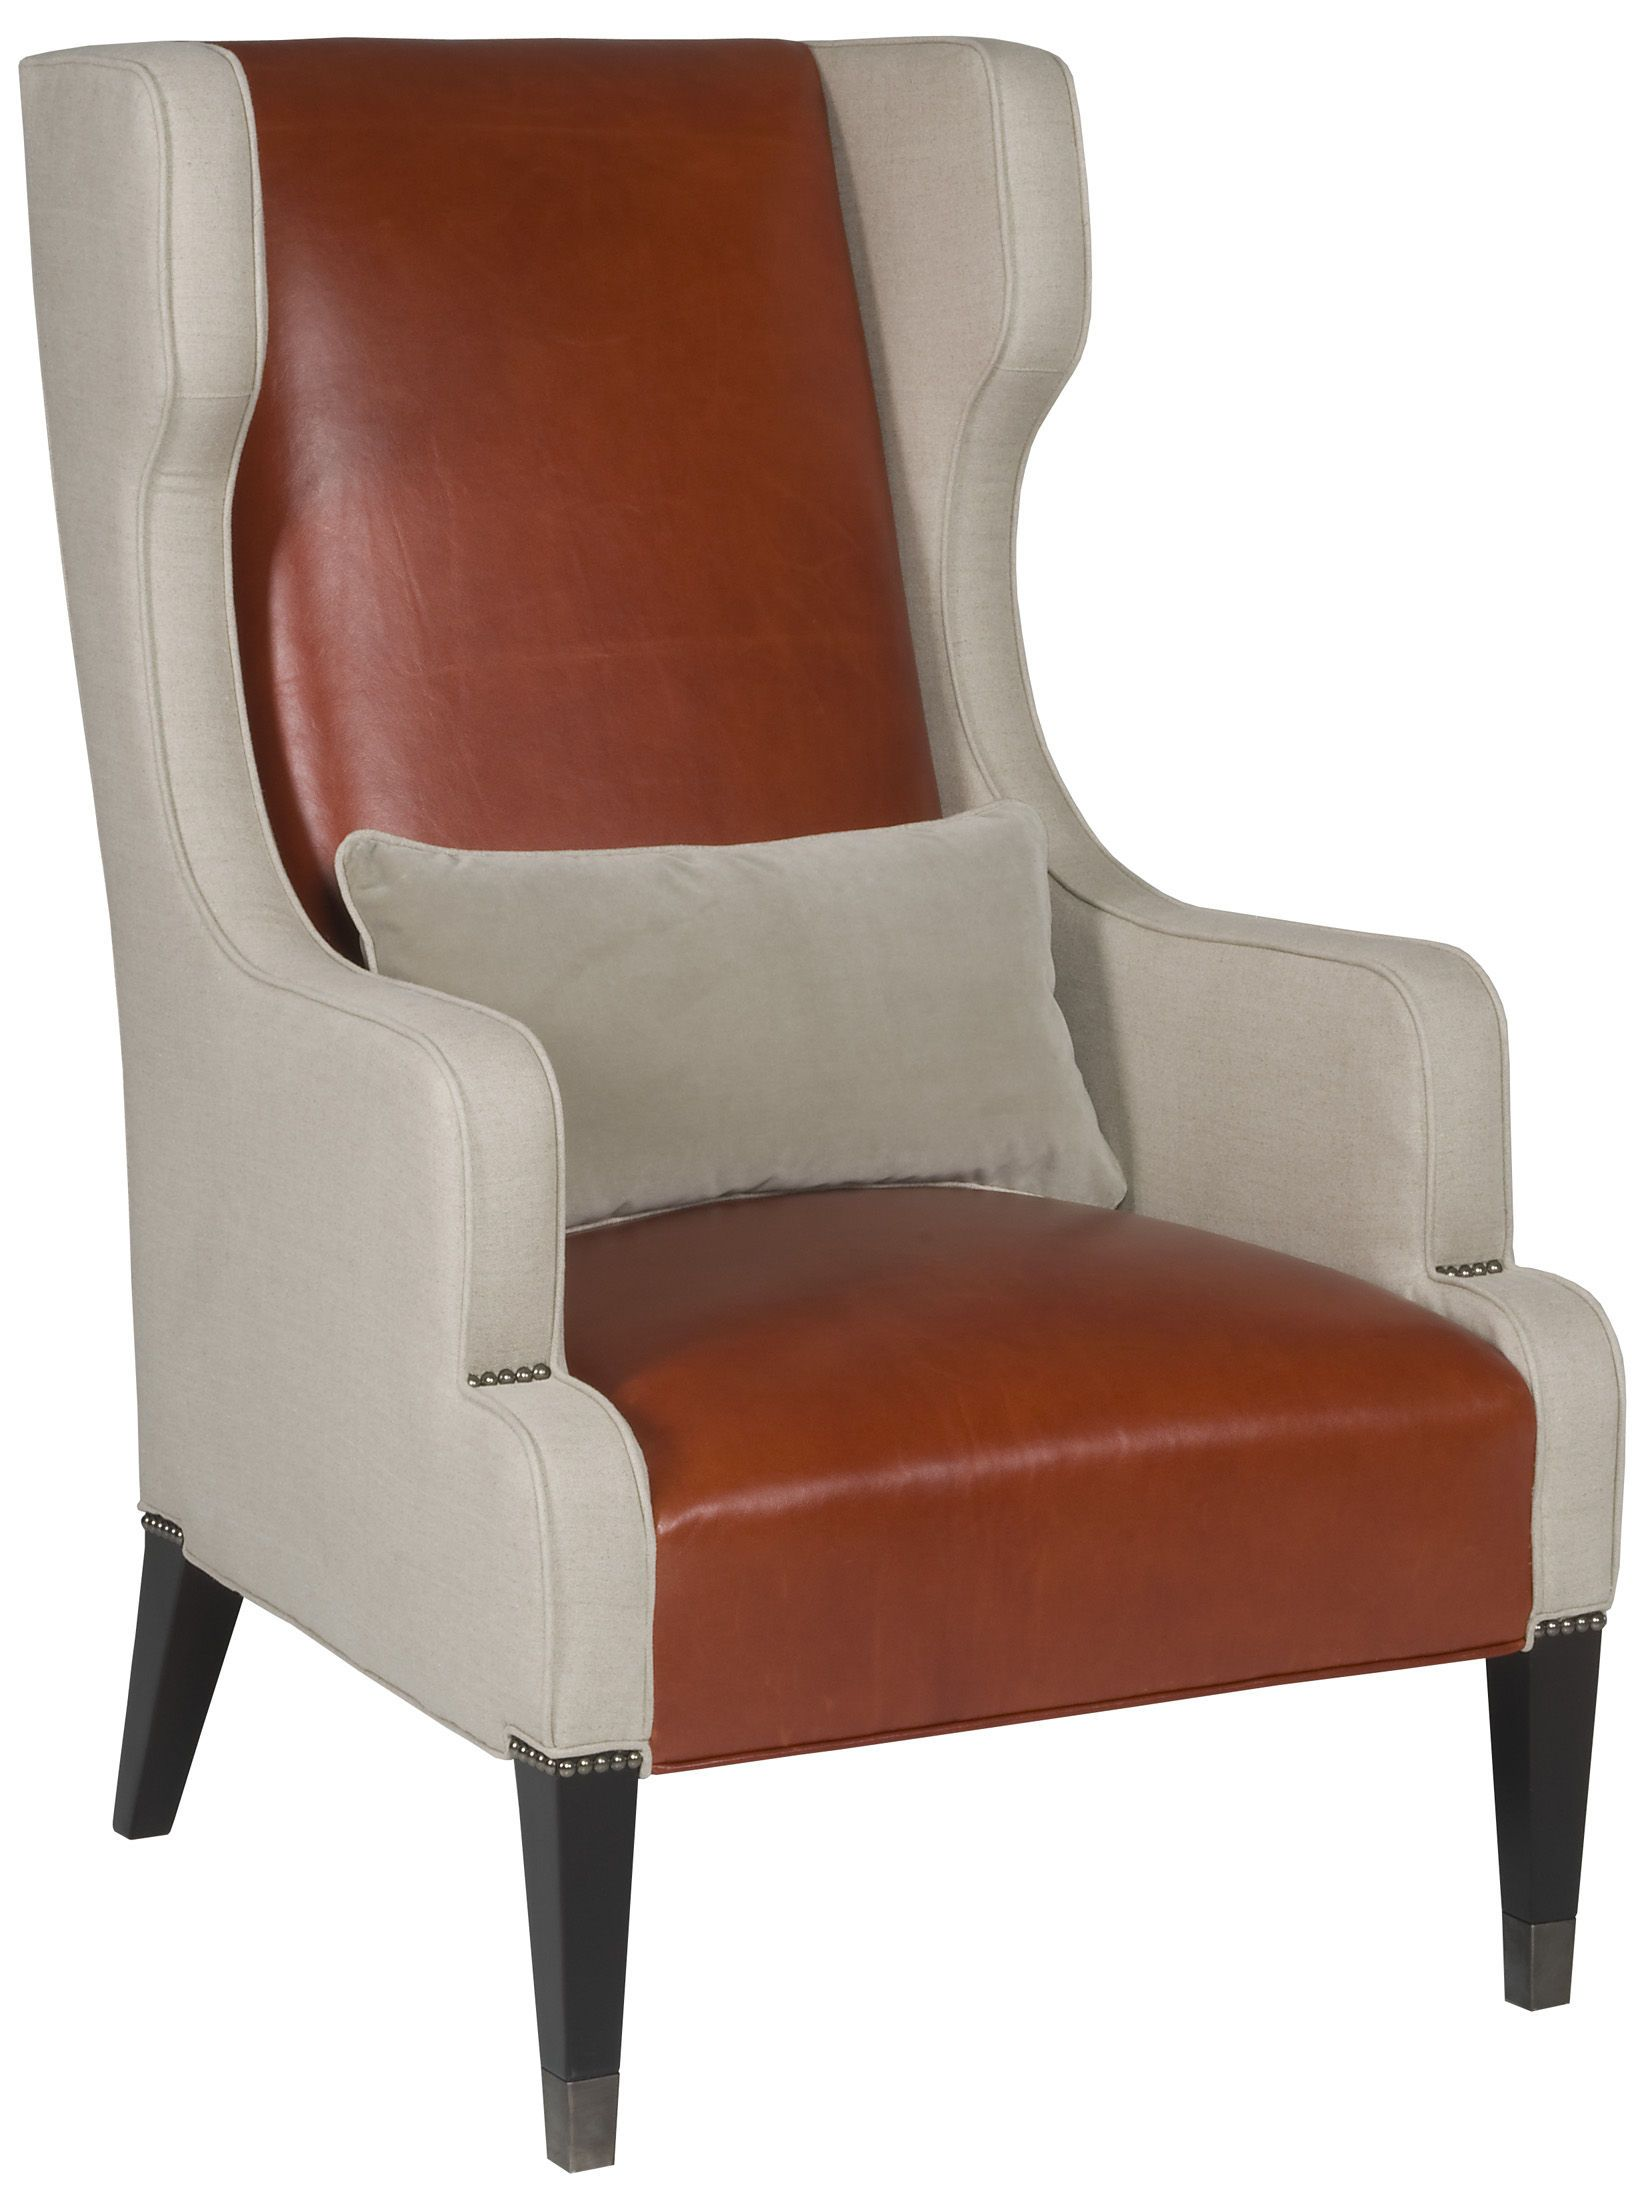 Overstuffed Wingback Chair Vanguard Living Room Wing Chair 9007 Ch Vanguard